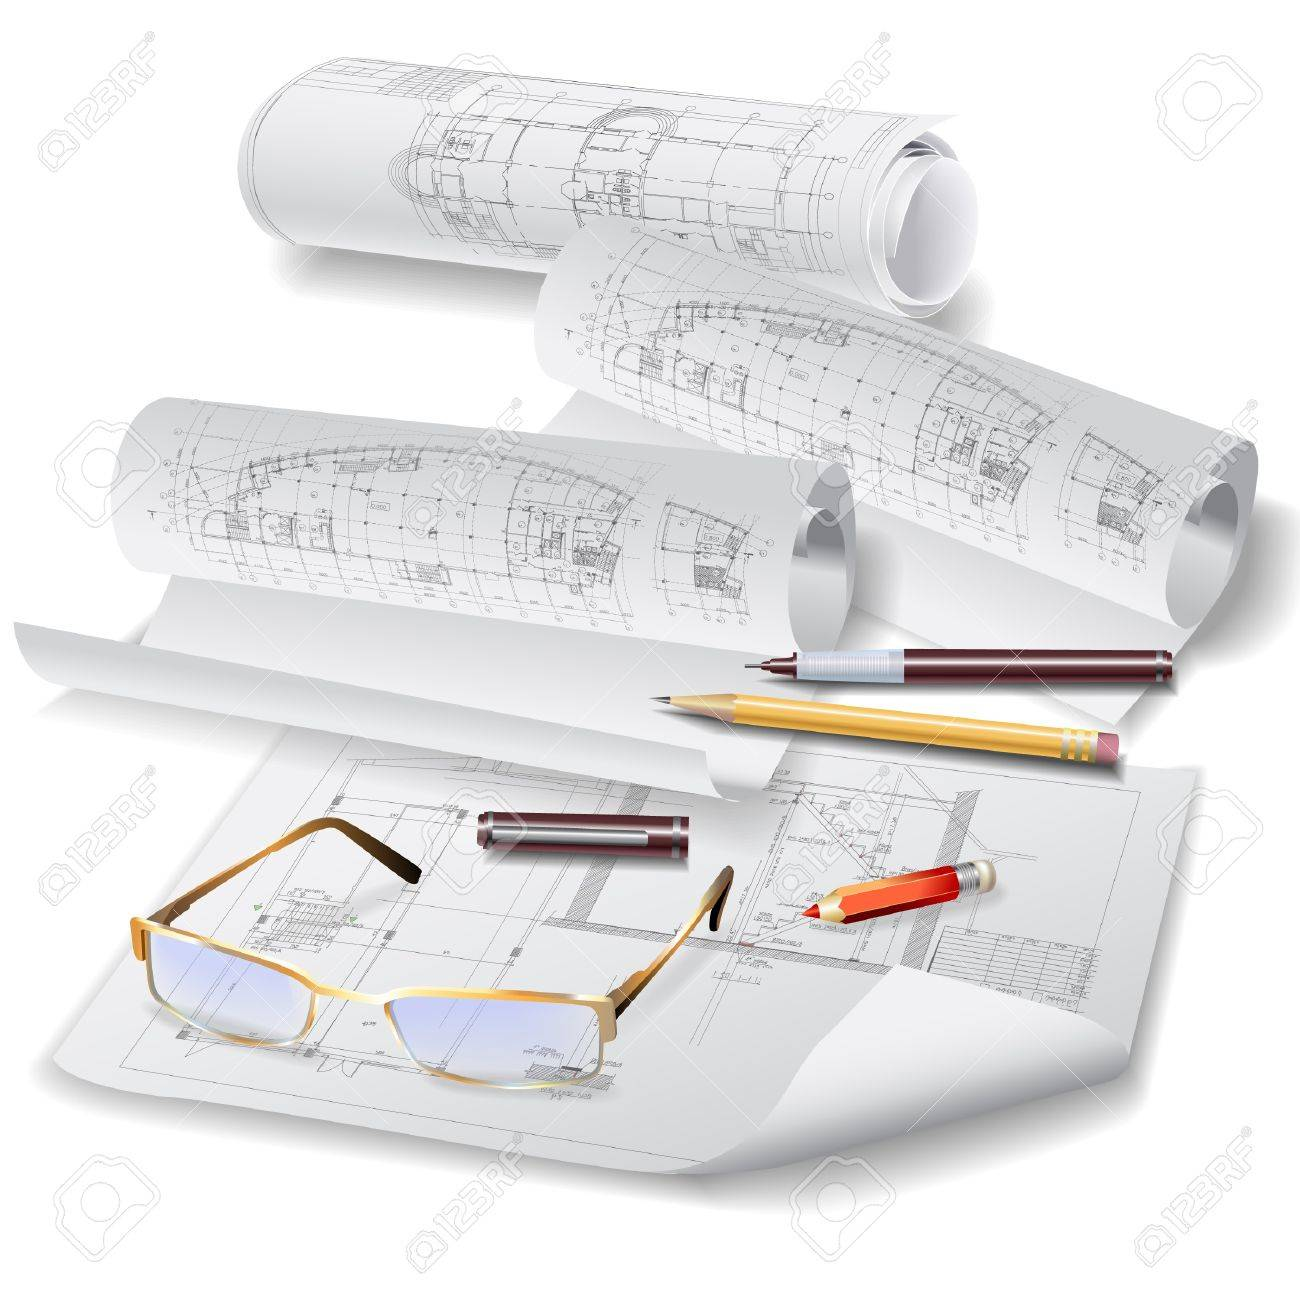 Architectural background with drawing tools and rolls of drawings Stock Vector - 14620674